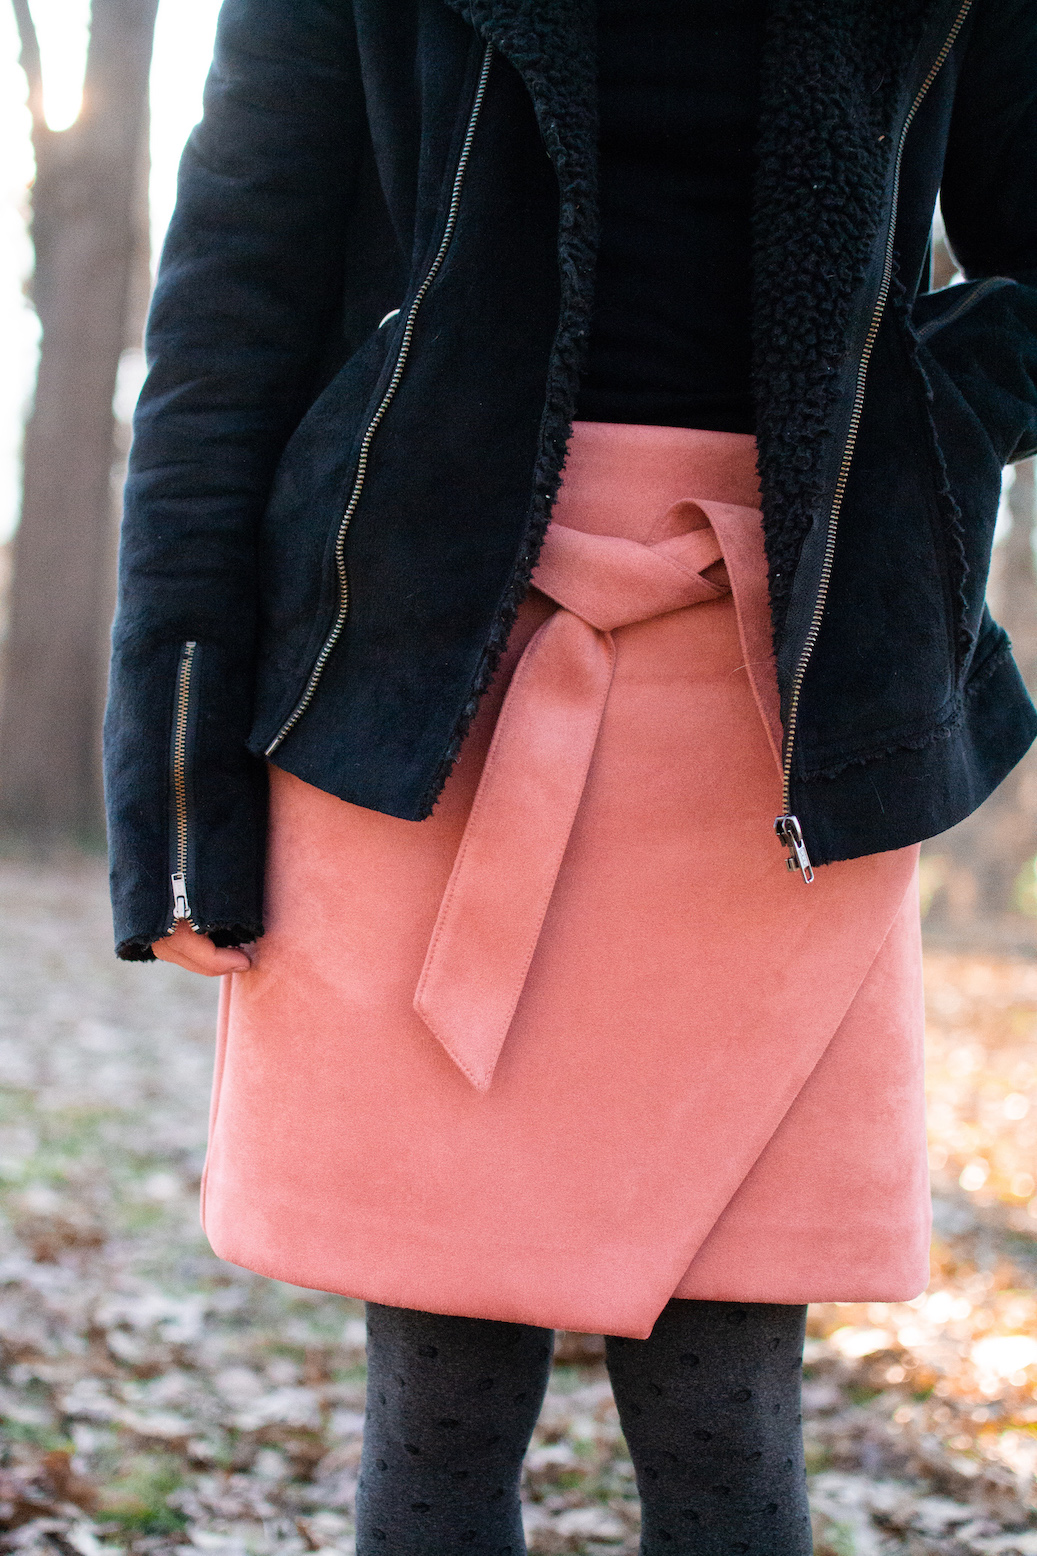 Tie-front skirt // A Week Of Casual & Comfortable Secondhand Outfits With Lee Rogers From Layers Of Lee on The Good Trade